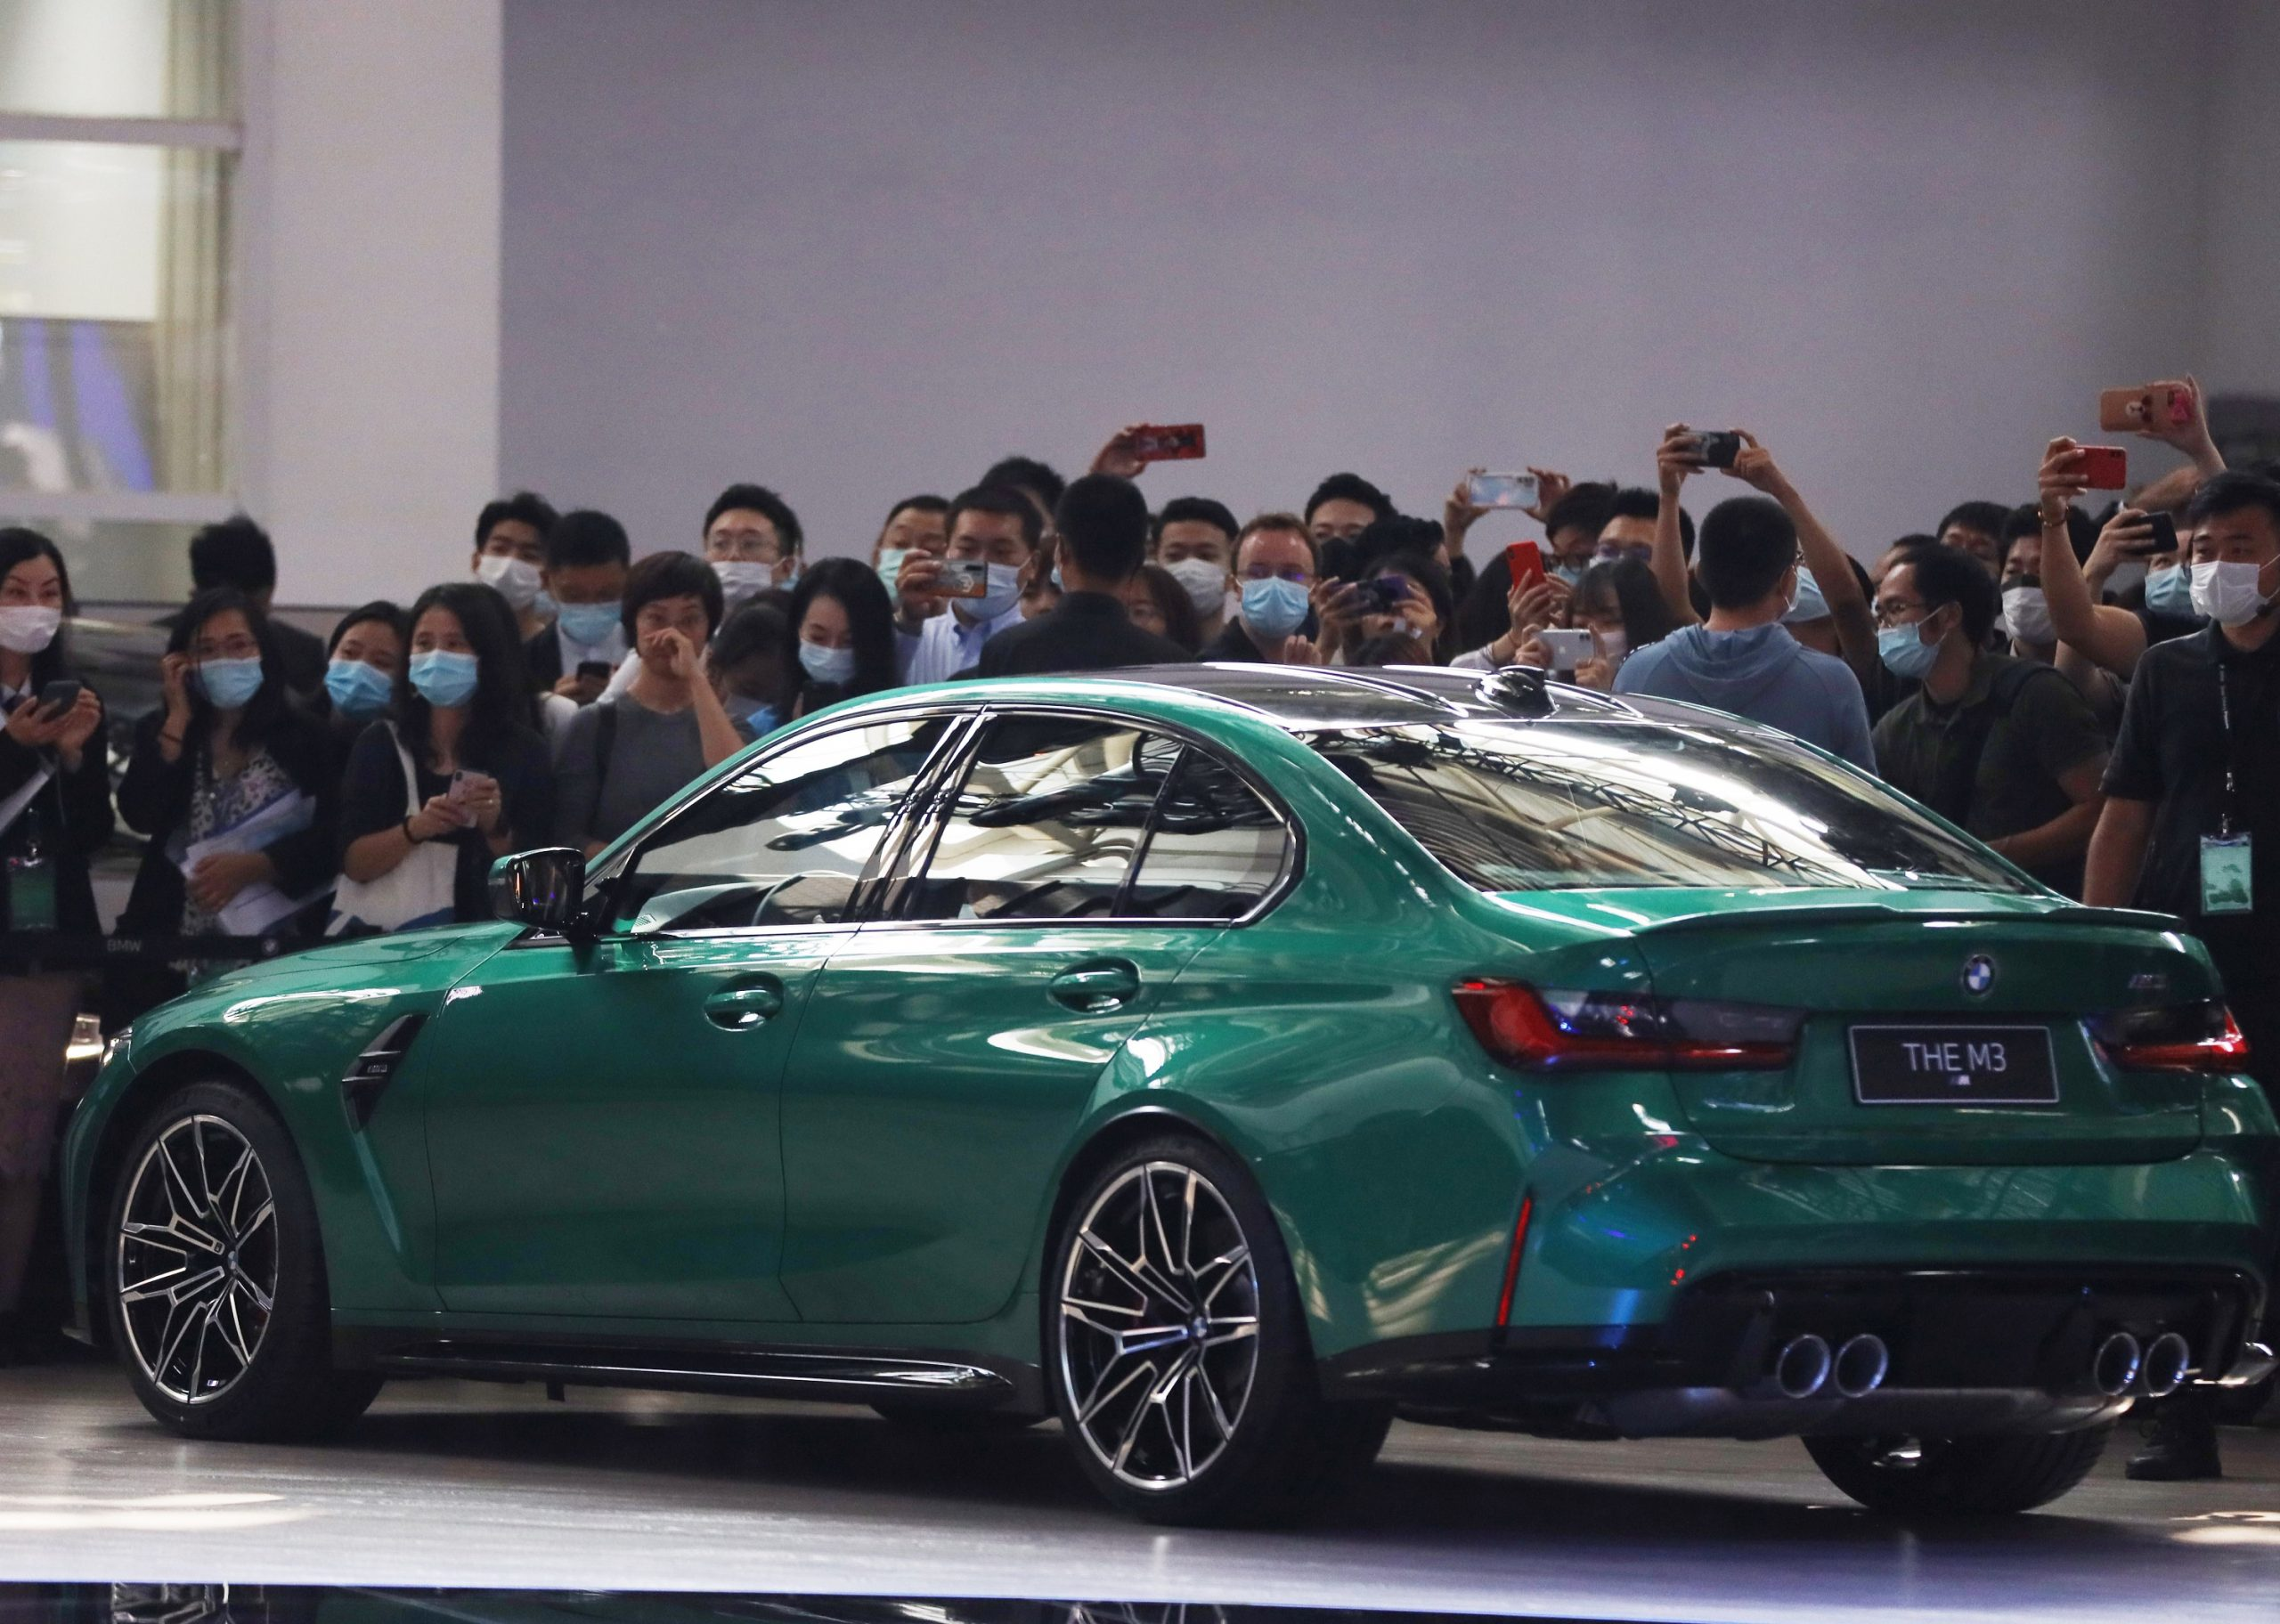 An Isle of Man green BMW M3 at an auto show, shot from the rear 3/4 angle.